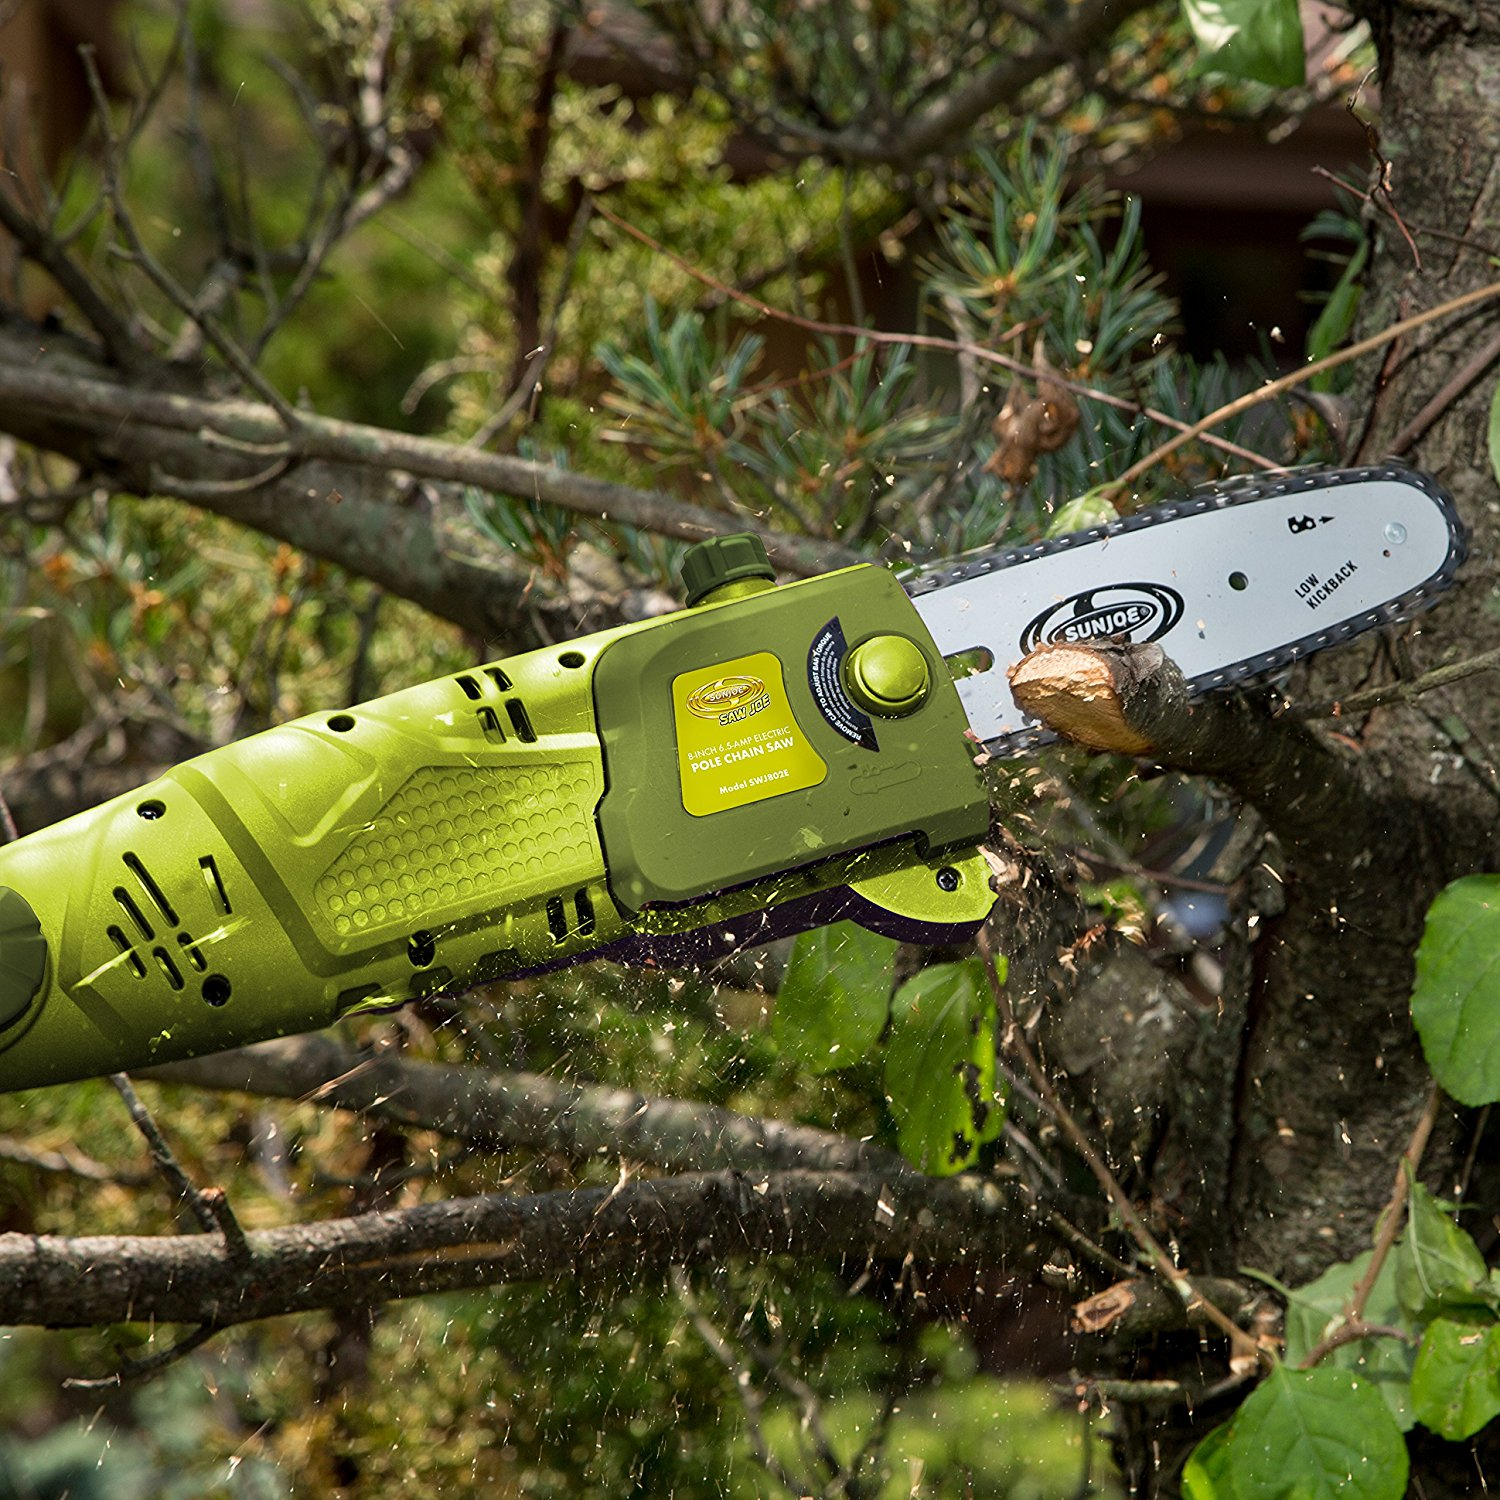 Light Pole Installation Near Me: Best Tree Pruners Reviews And Ratings In 2018